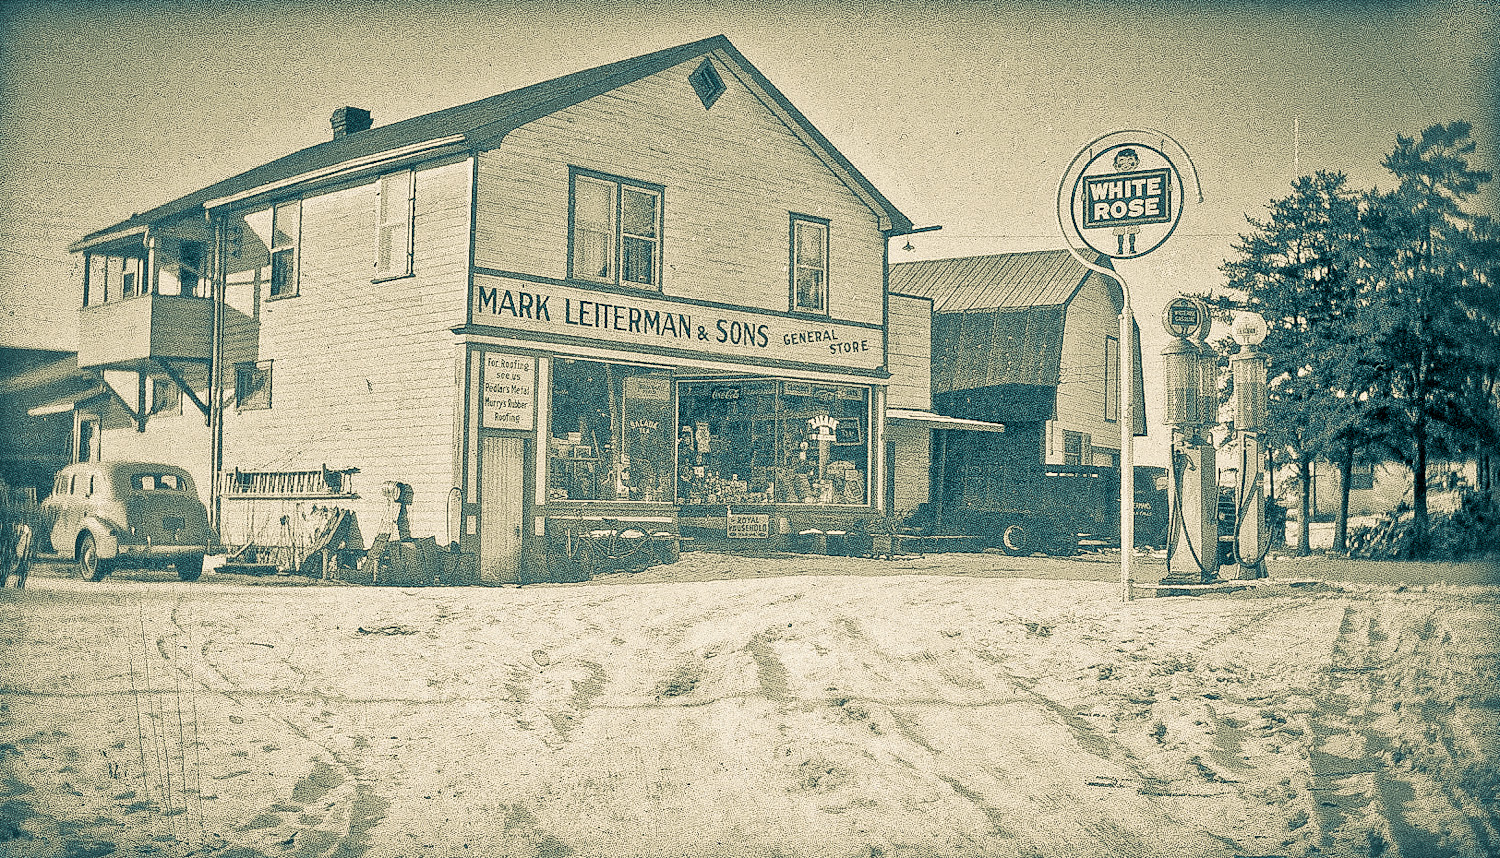 1930's photo of Mark Leiterman & Sons General Store located in Kakabeka Falls, Ontario. The building is now the home of My Painted Door.